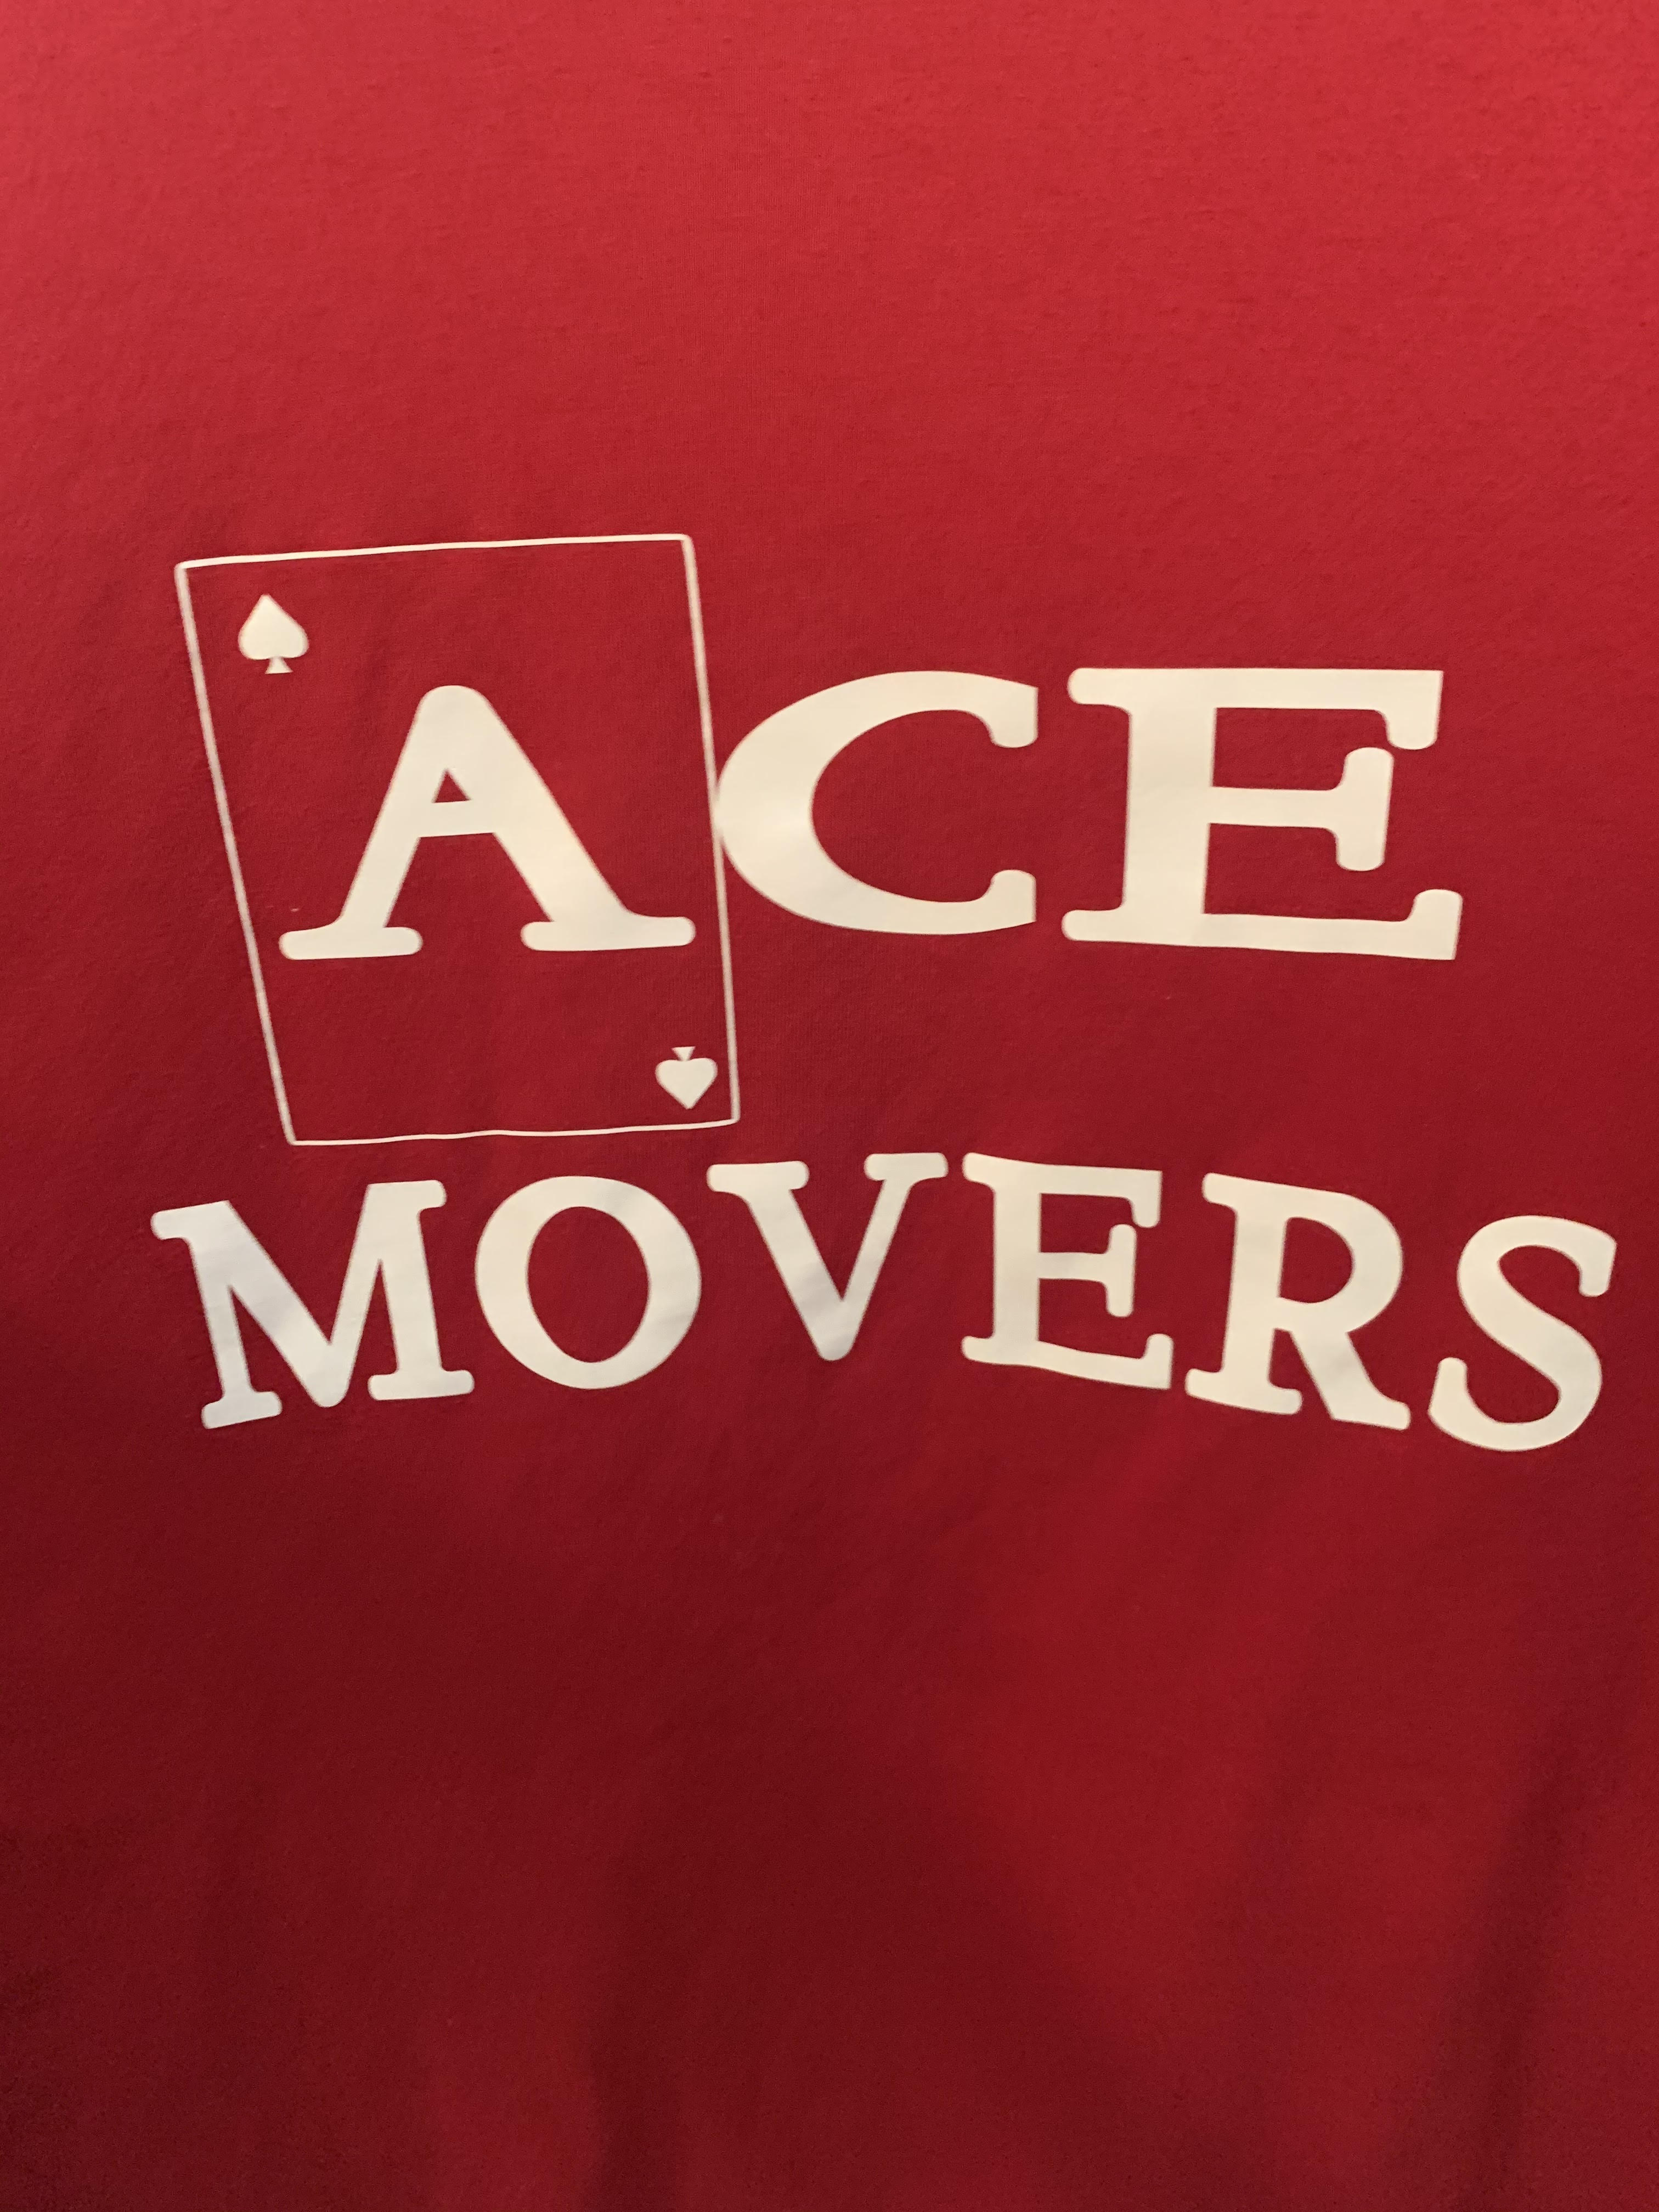 Ace Movers LLC.